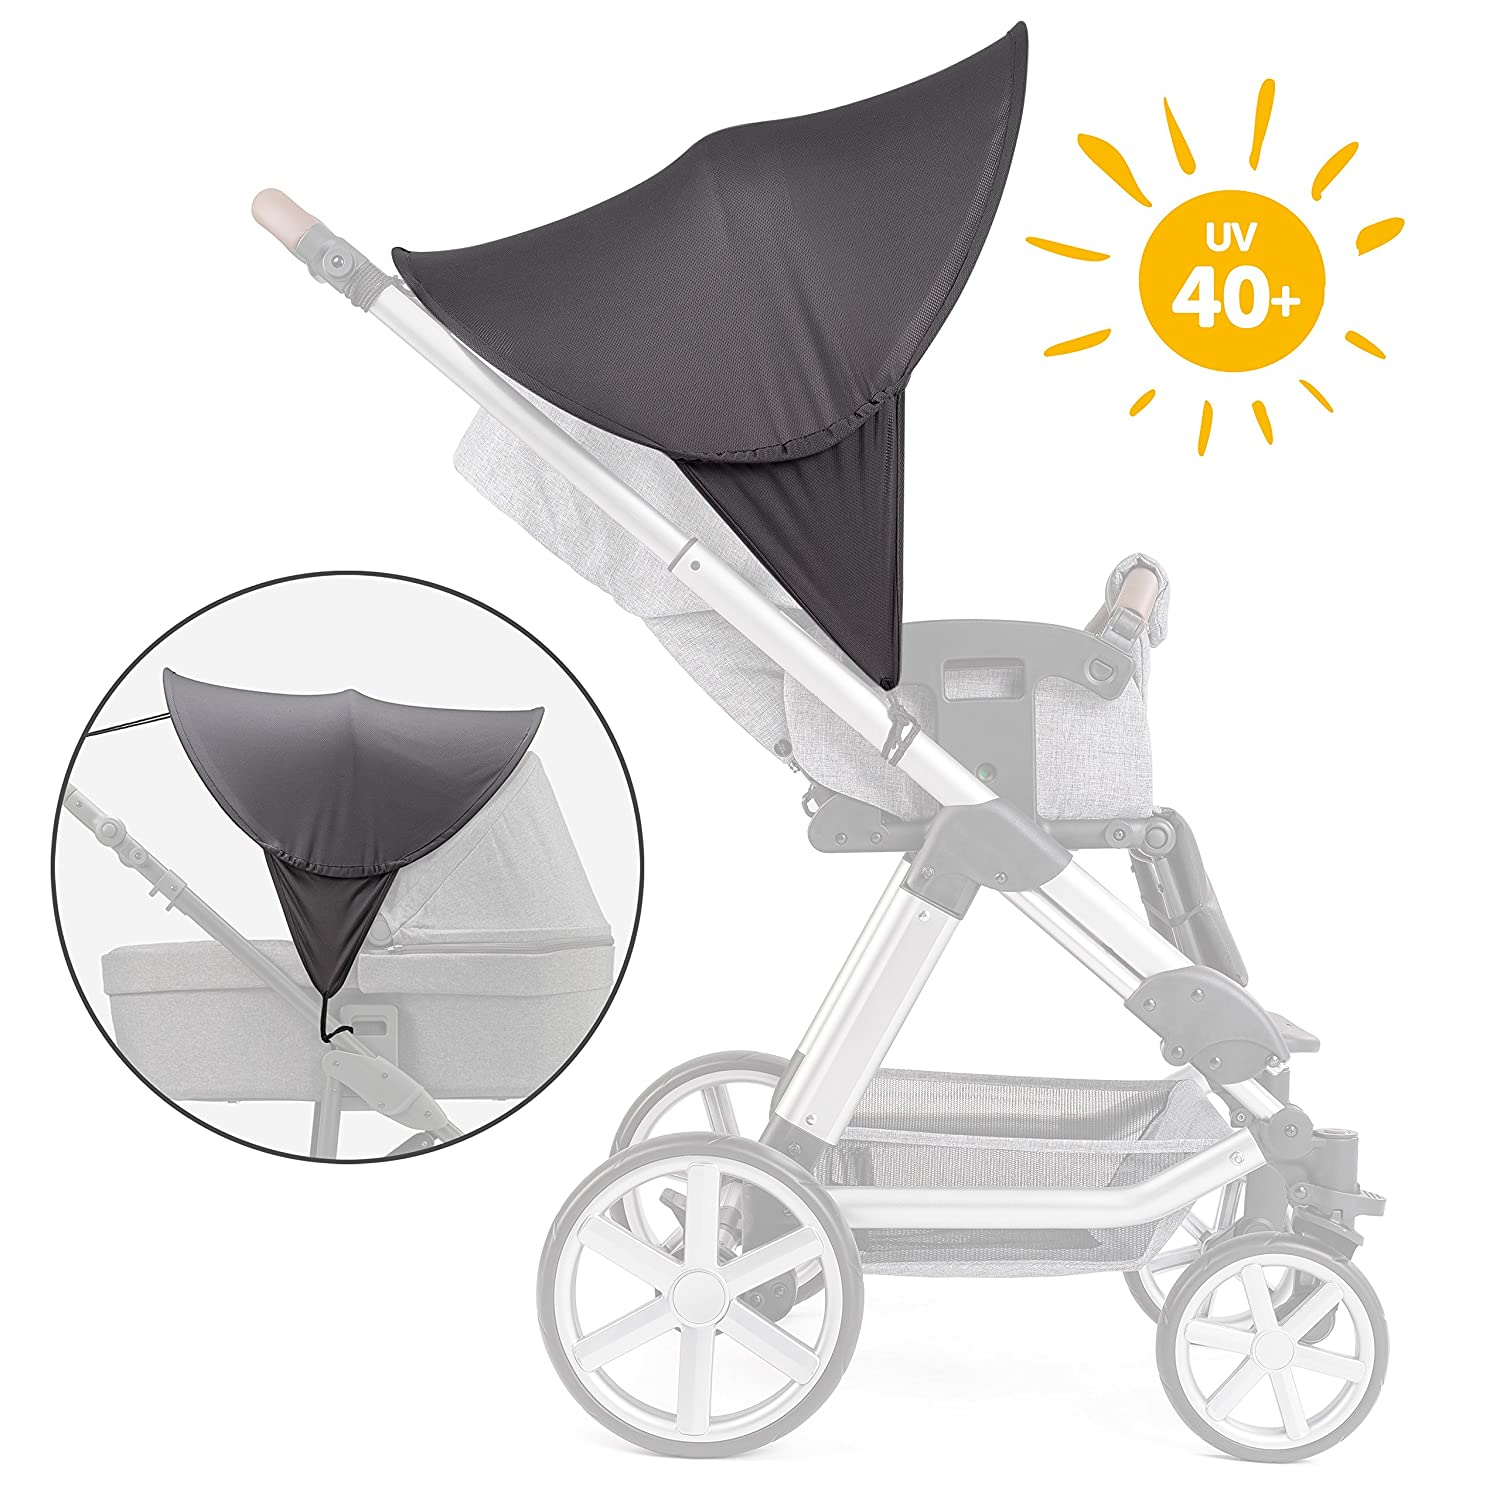 Zamboo Universal Sun Shade Canopy for Pushchair, Stroller, Buggy, Pram and Carrycot | XL Pop-Up Pram Hood Extender with UV Protection 40+ and Storage Bag - Grey